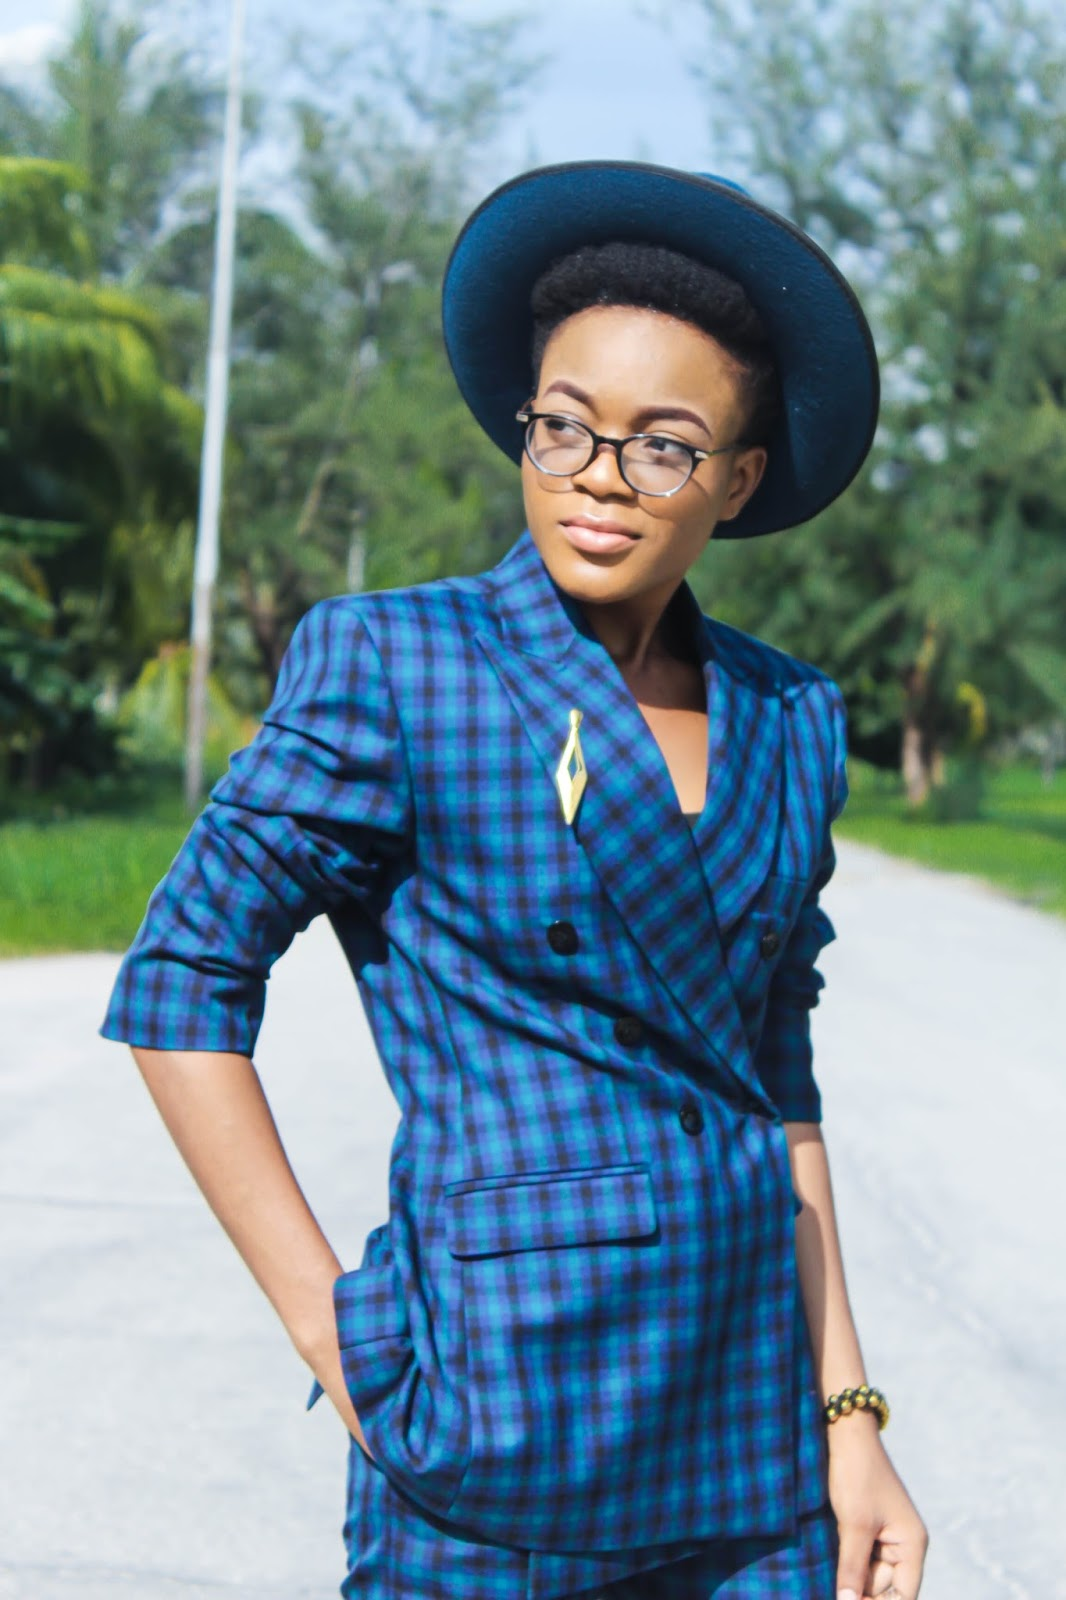 how to dress androgynous female, how to dress like a tomboy, teal blue plaid suit unisex